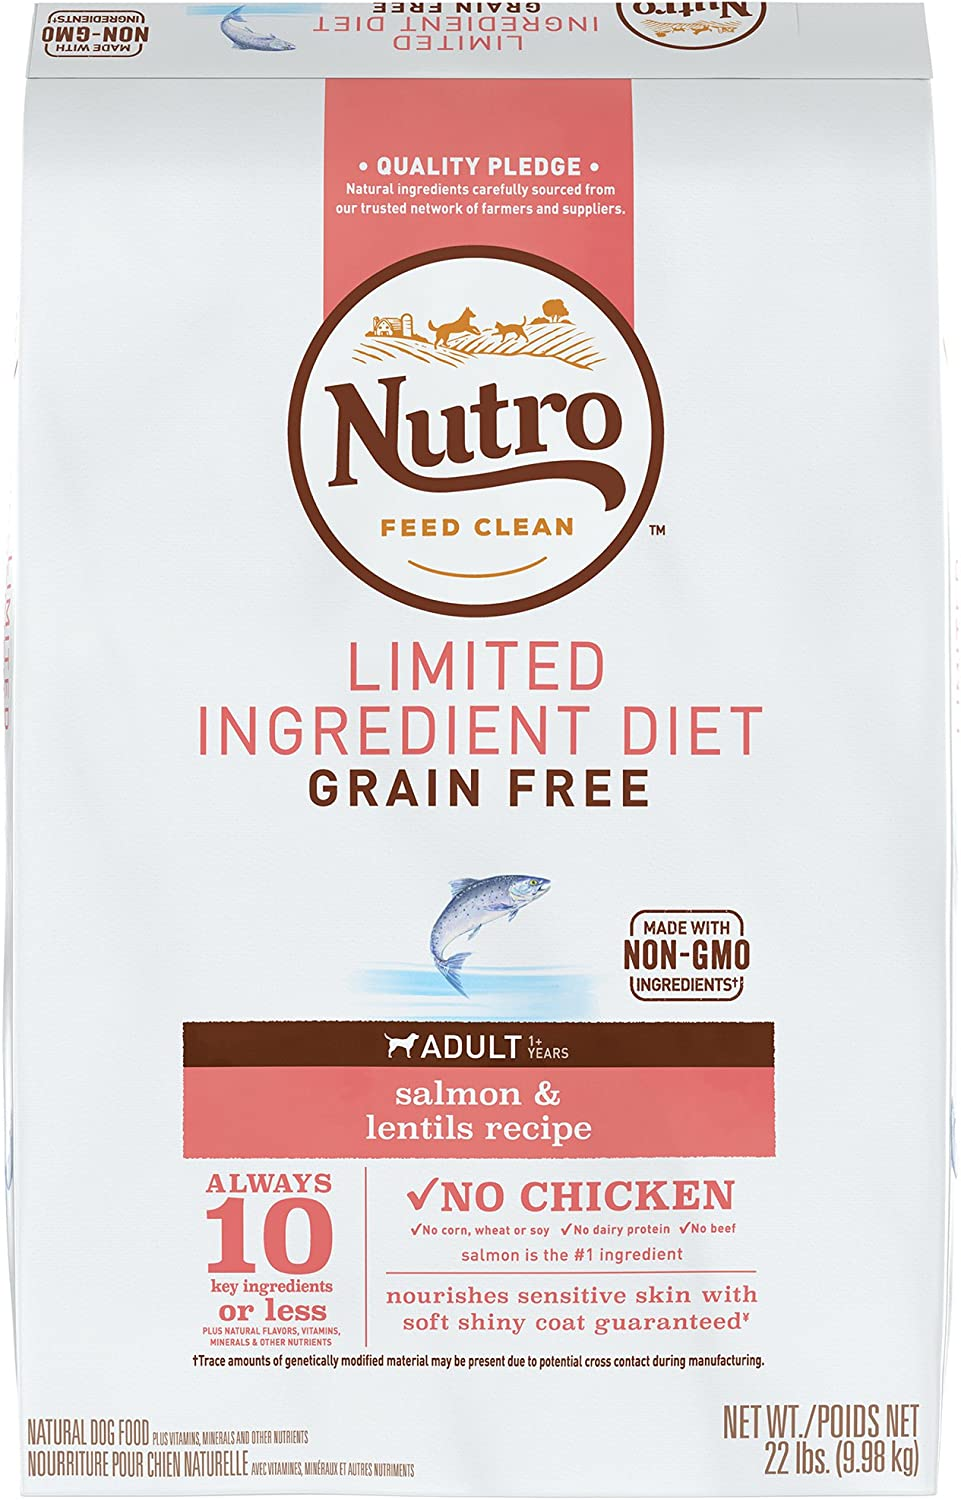 Nutro Limited Ingredient Diet Adult Dry Food for Dogs  Salmon  Adult  9.98kg